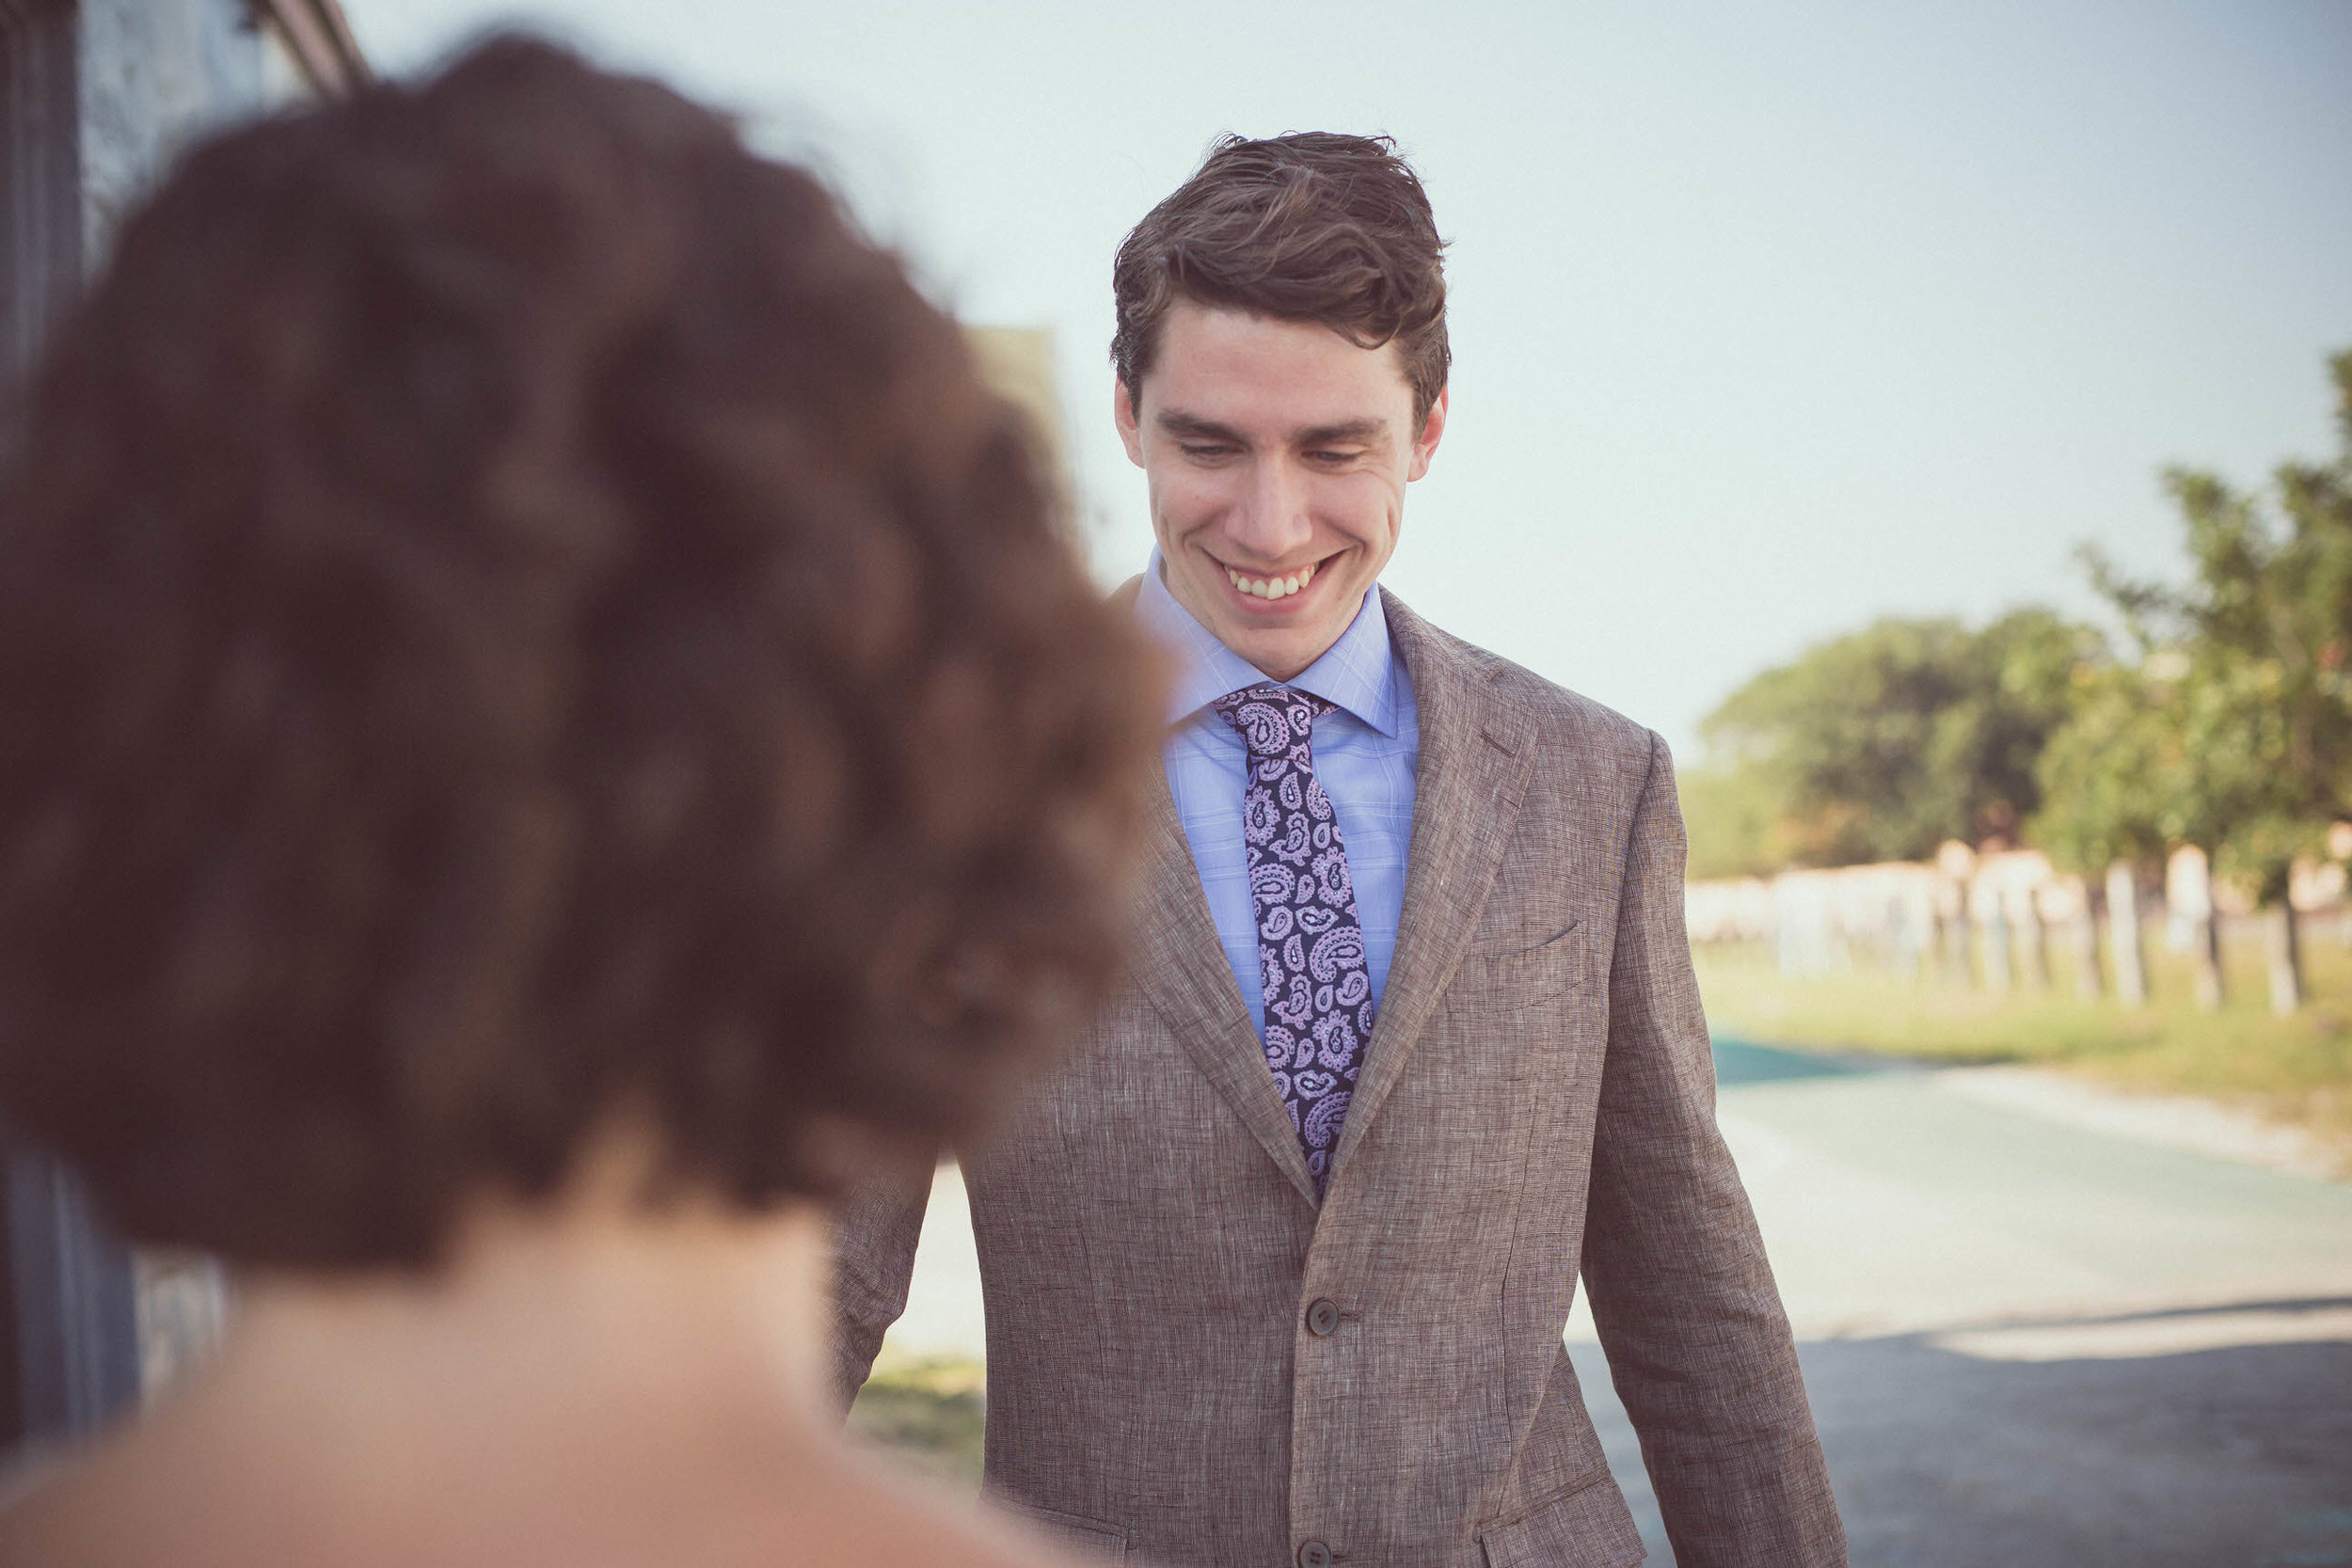 bride-and-groom-first-look-fats-village-portrait-session.jpg